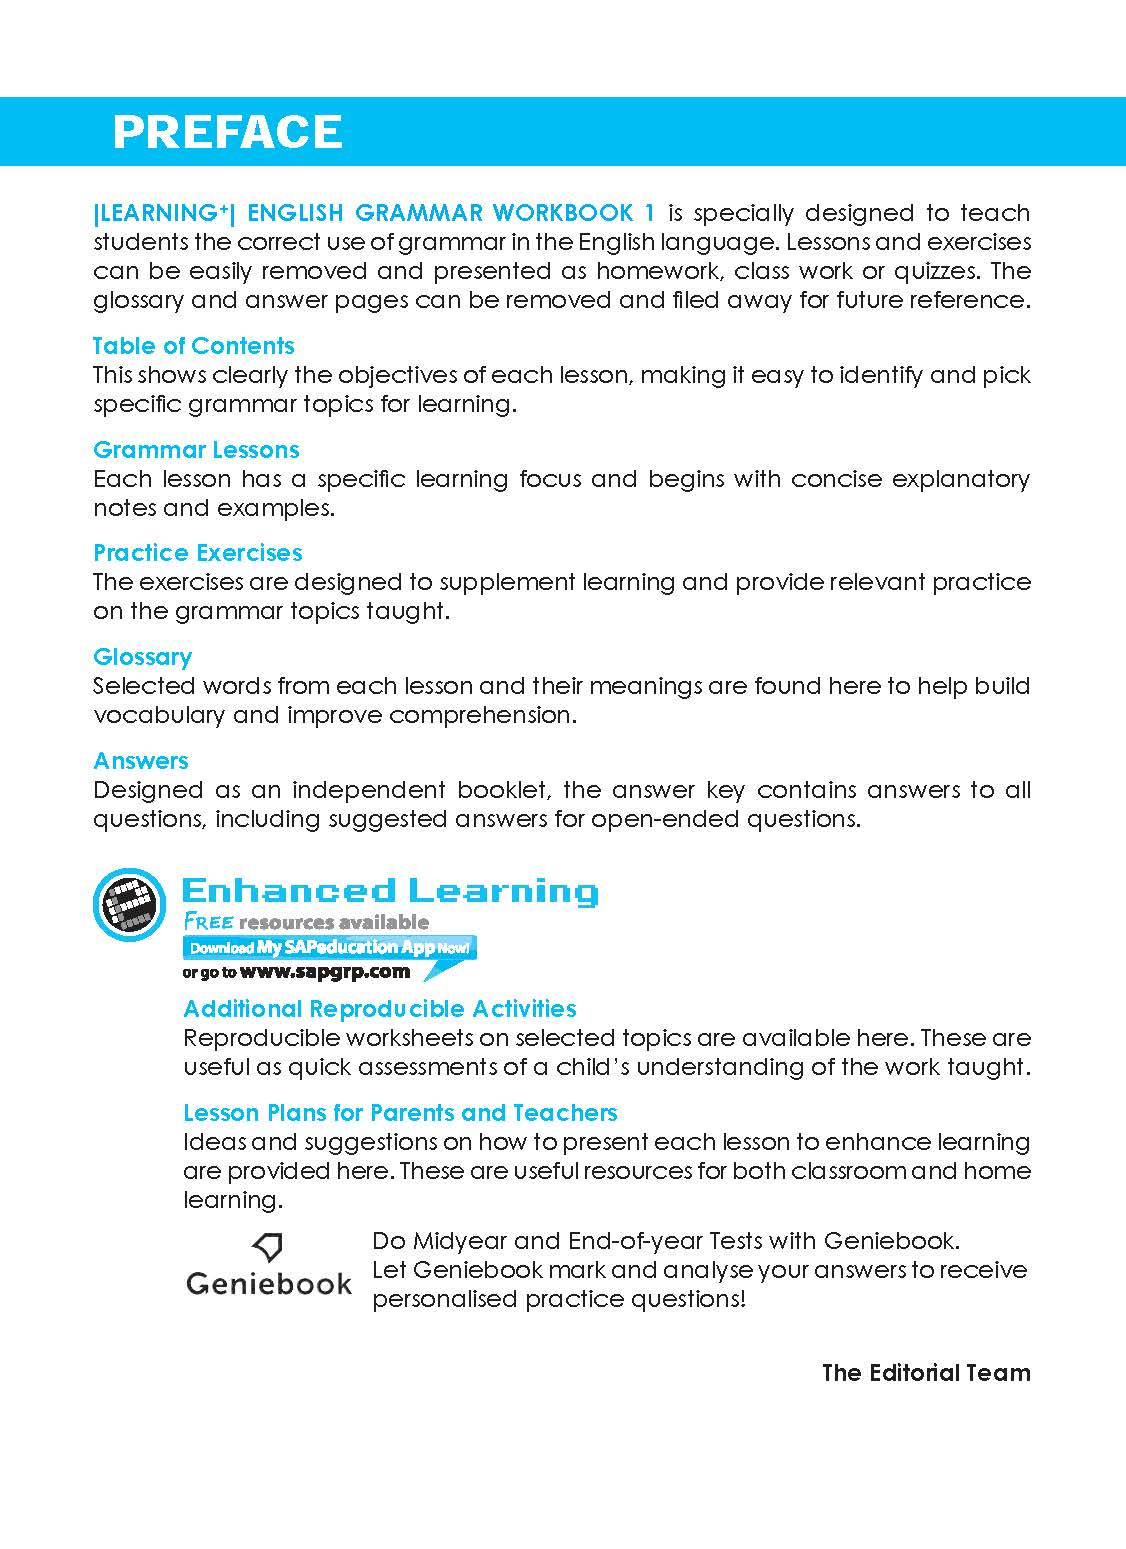 3212831_Learning+ Eng Grammar Wb1_Genie_Sample Pages_Page_2